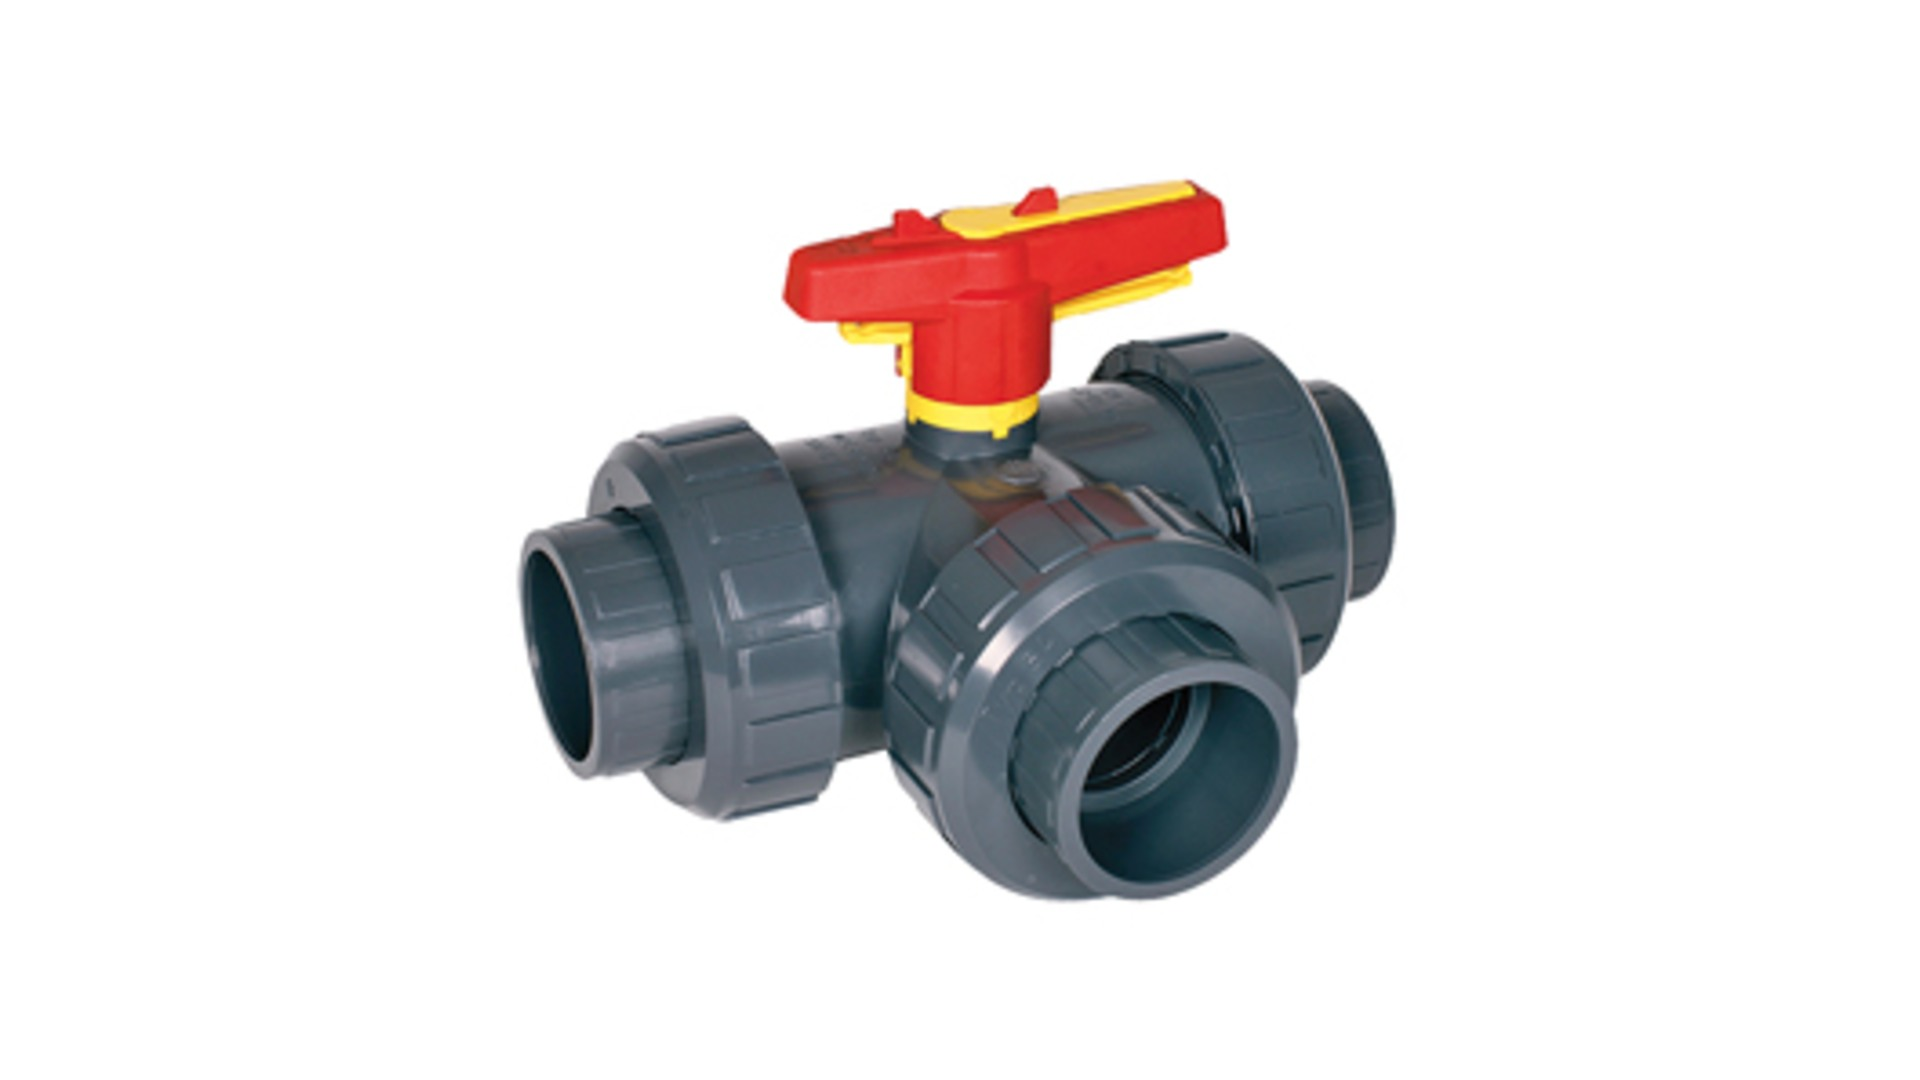 Bamo Manually Operated 3-Way Ball Valves, Industrial Series VM3V S4